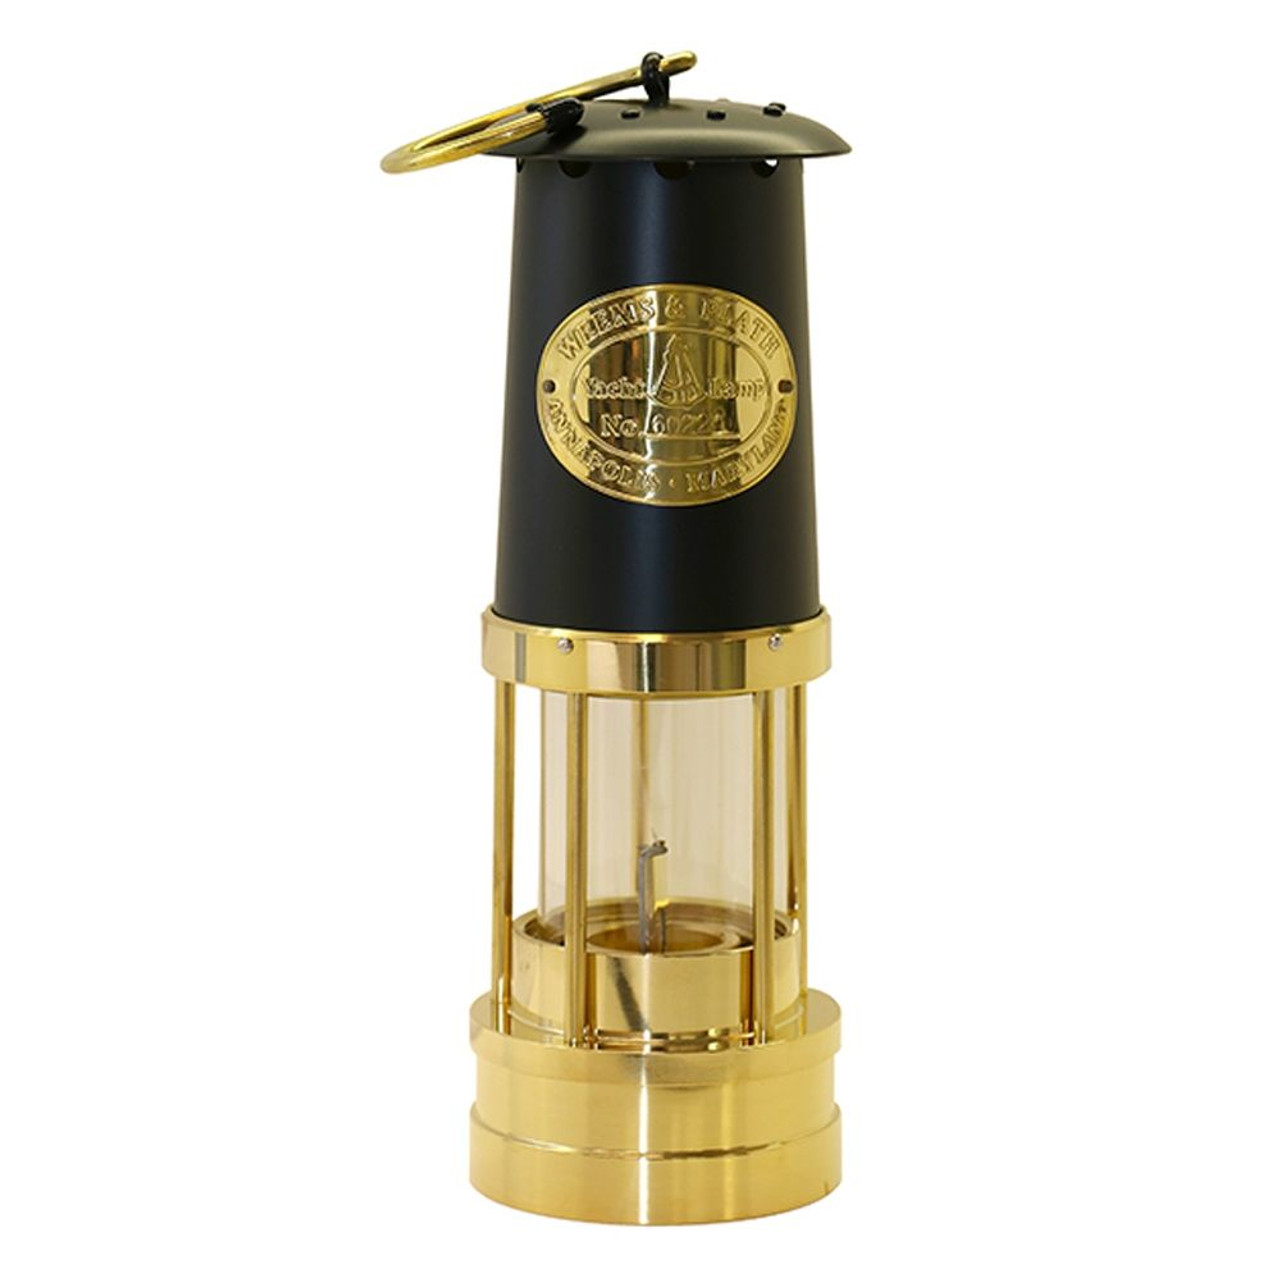 Brass Yacht Lamp with Black Bonnet